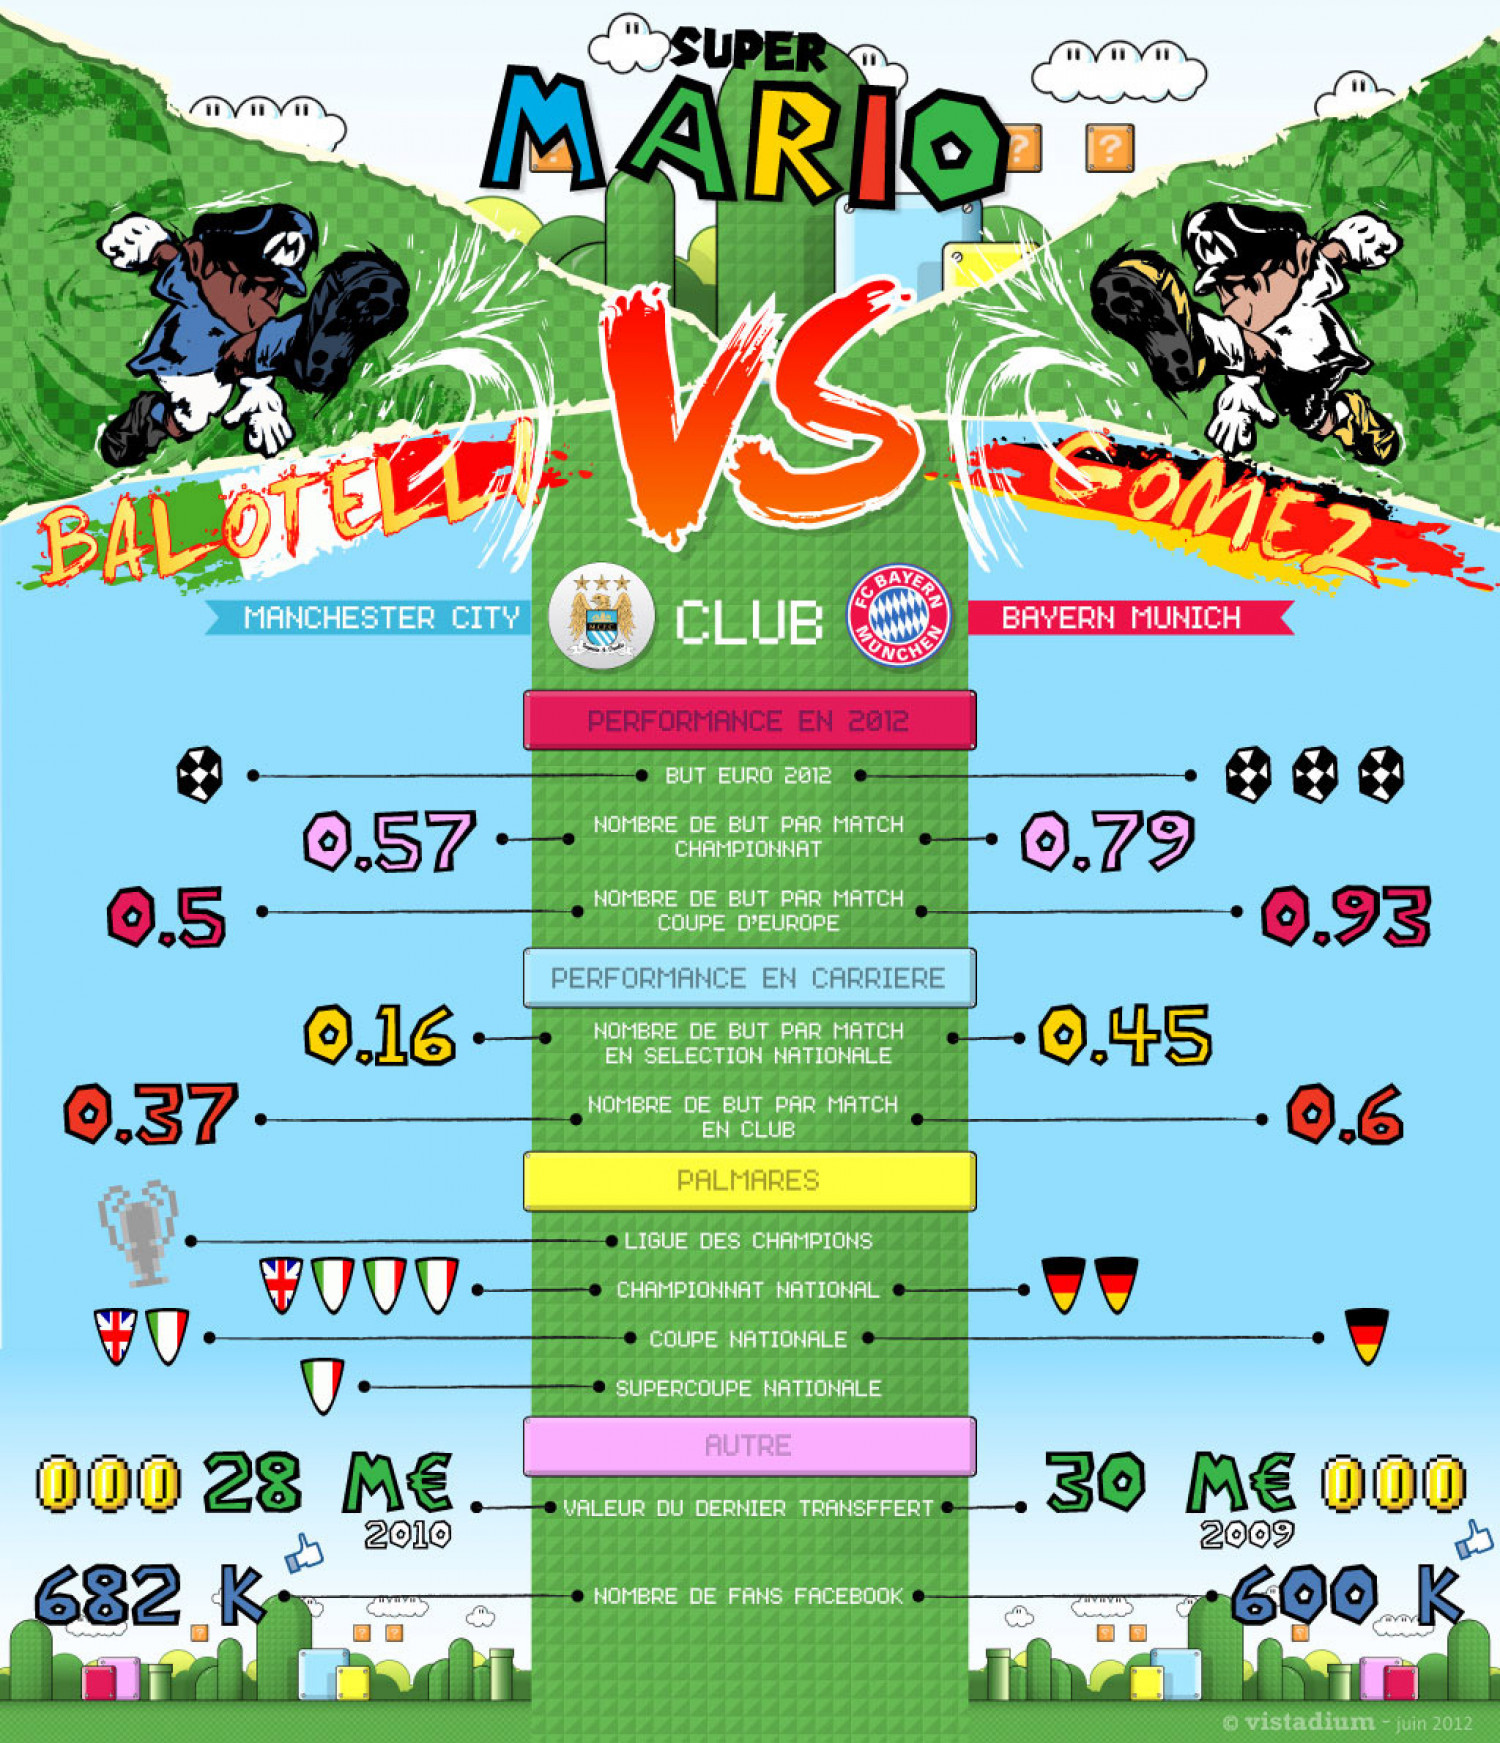 Balotelli Vs Gomez : who is Super Mario ? Infographic